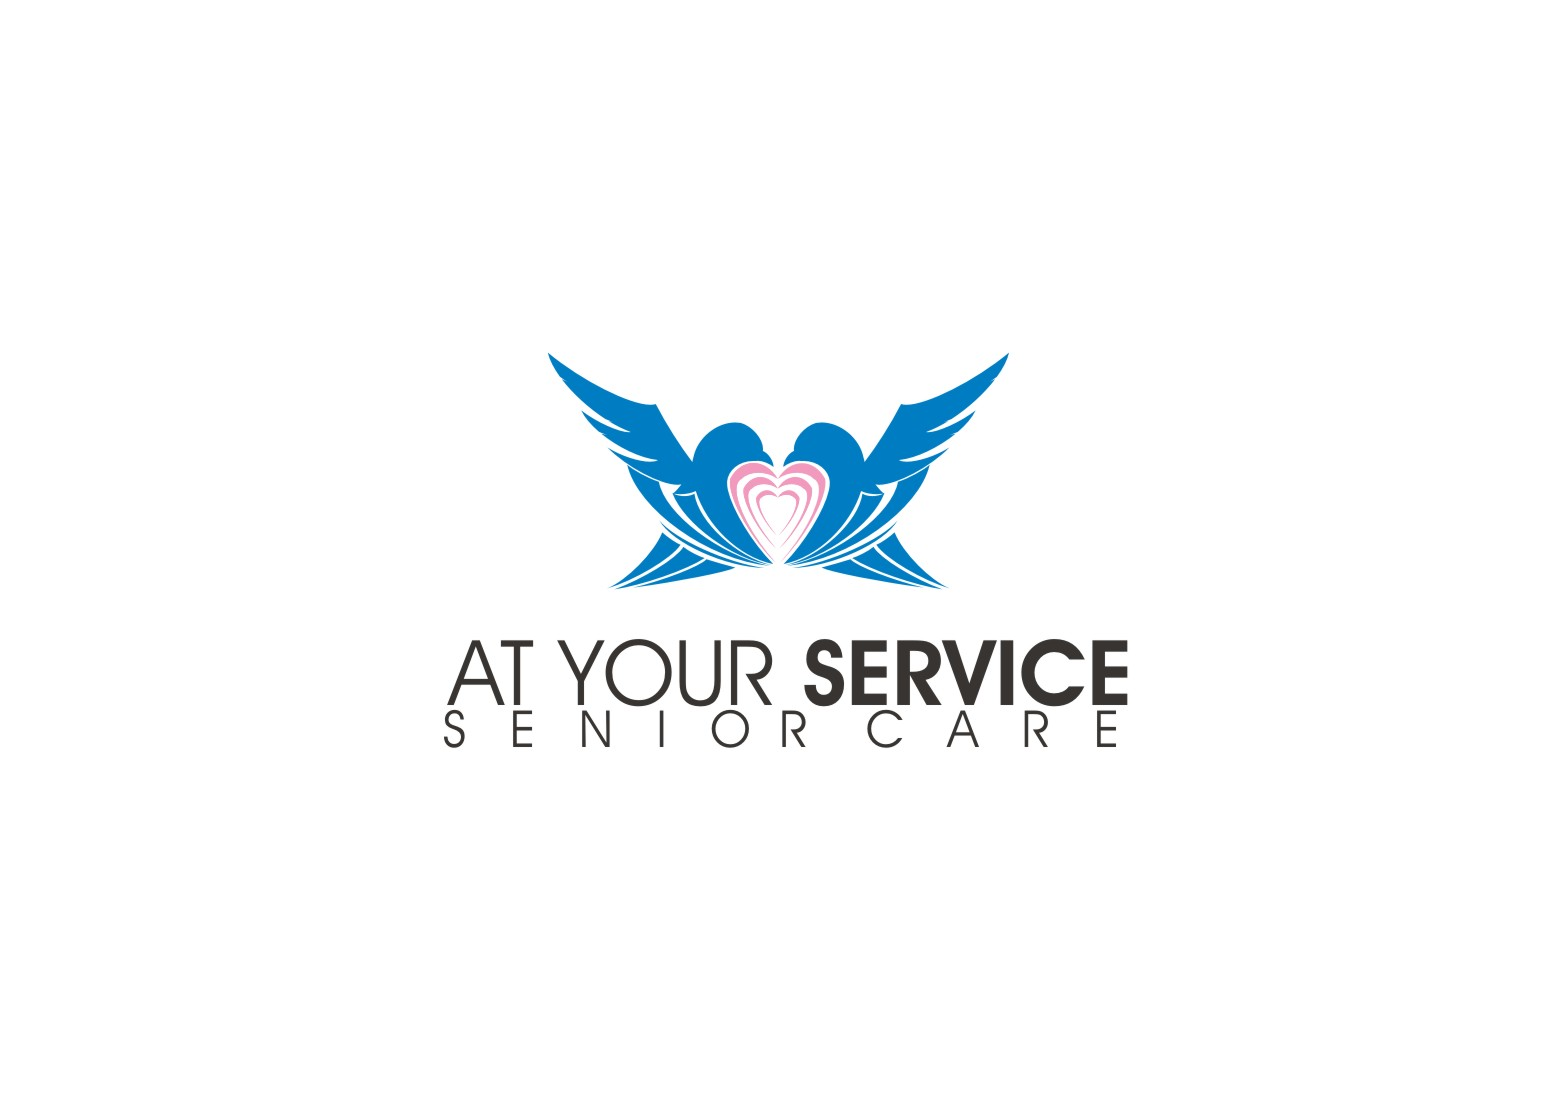 Logo Design by yanxsant - Entry No. 5 in the Logo Design Contest Care To Go Services.